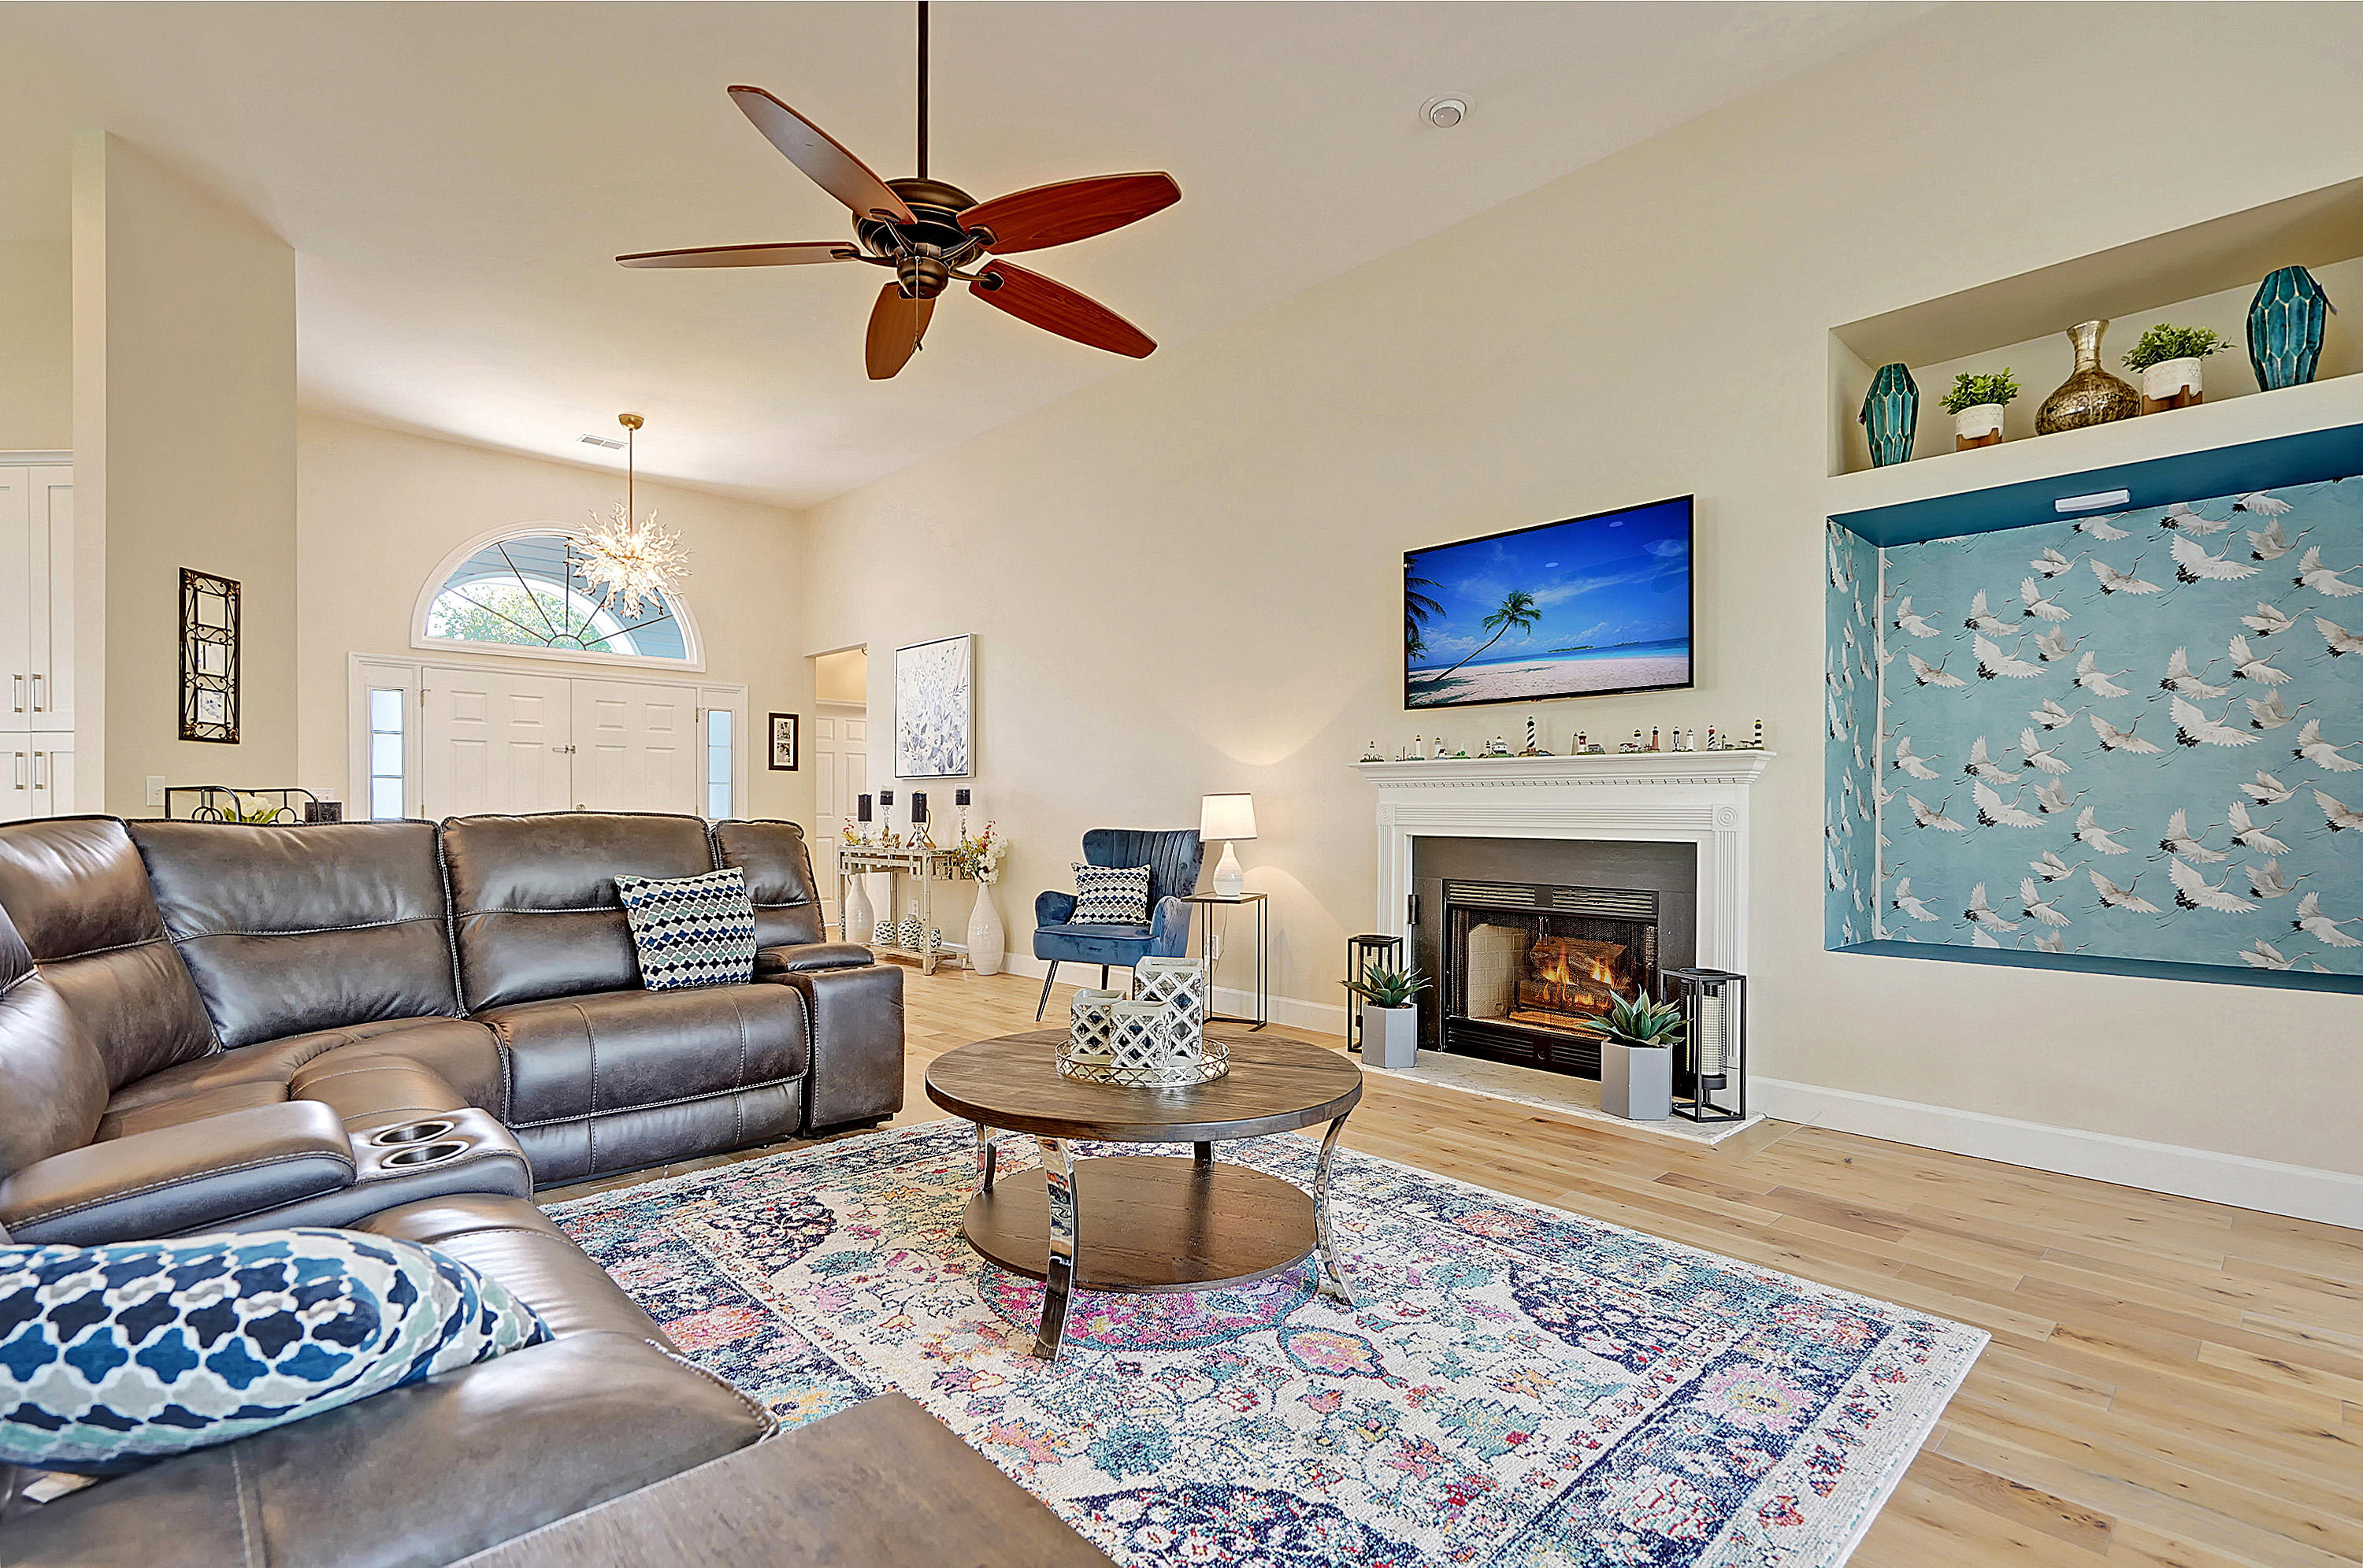 Rivertowne Country Club Homes For Sale - 1869 Palmetto Isle, Mount Pleasant, SC - 0